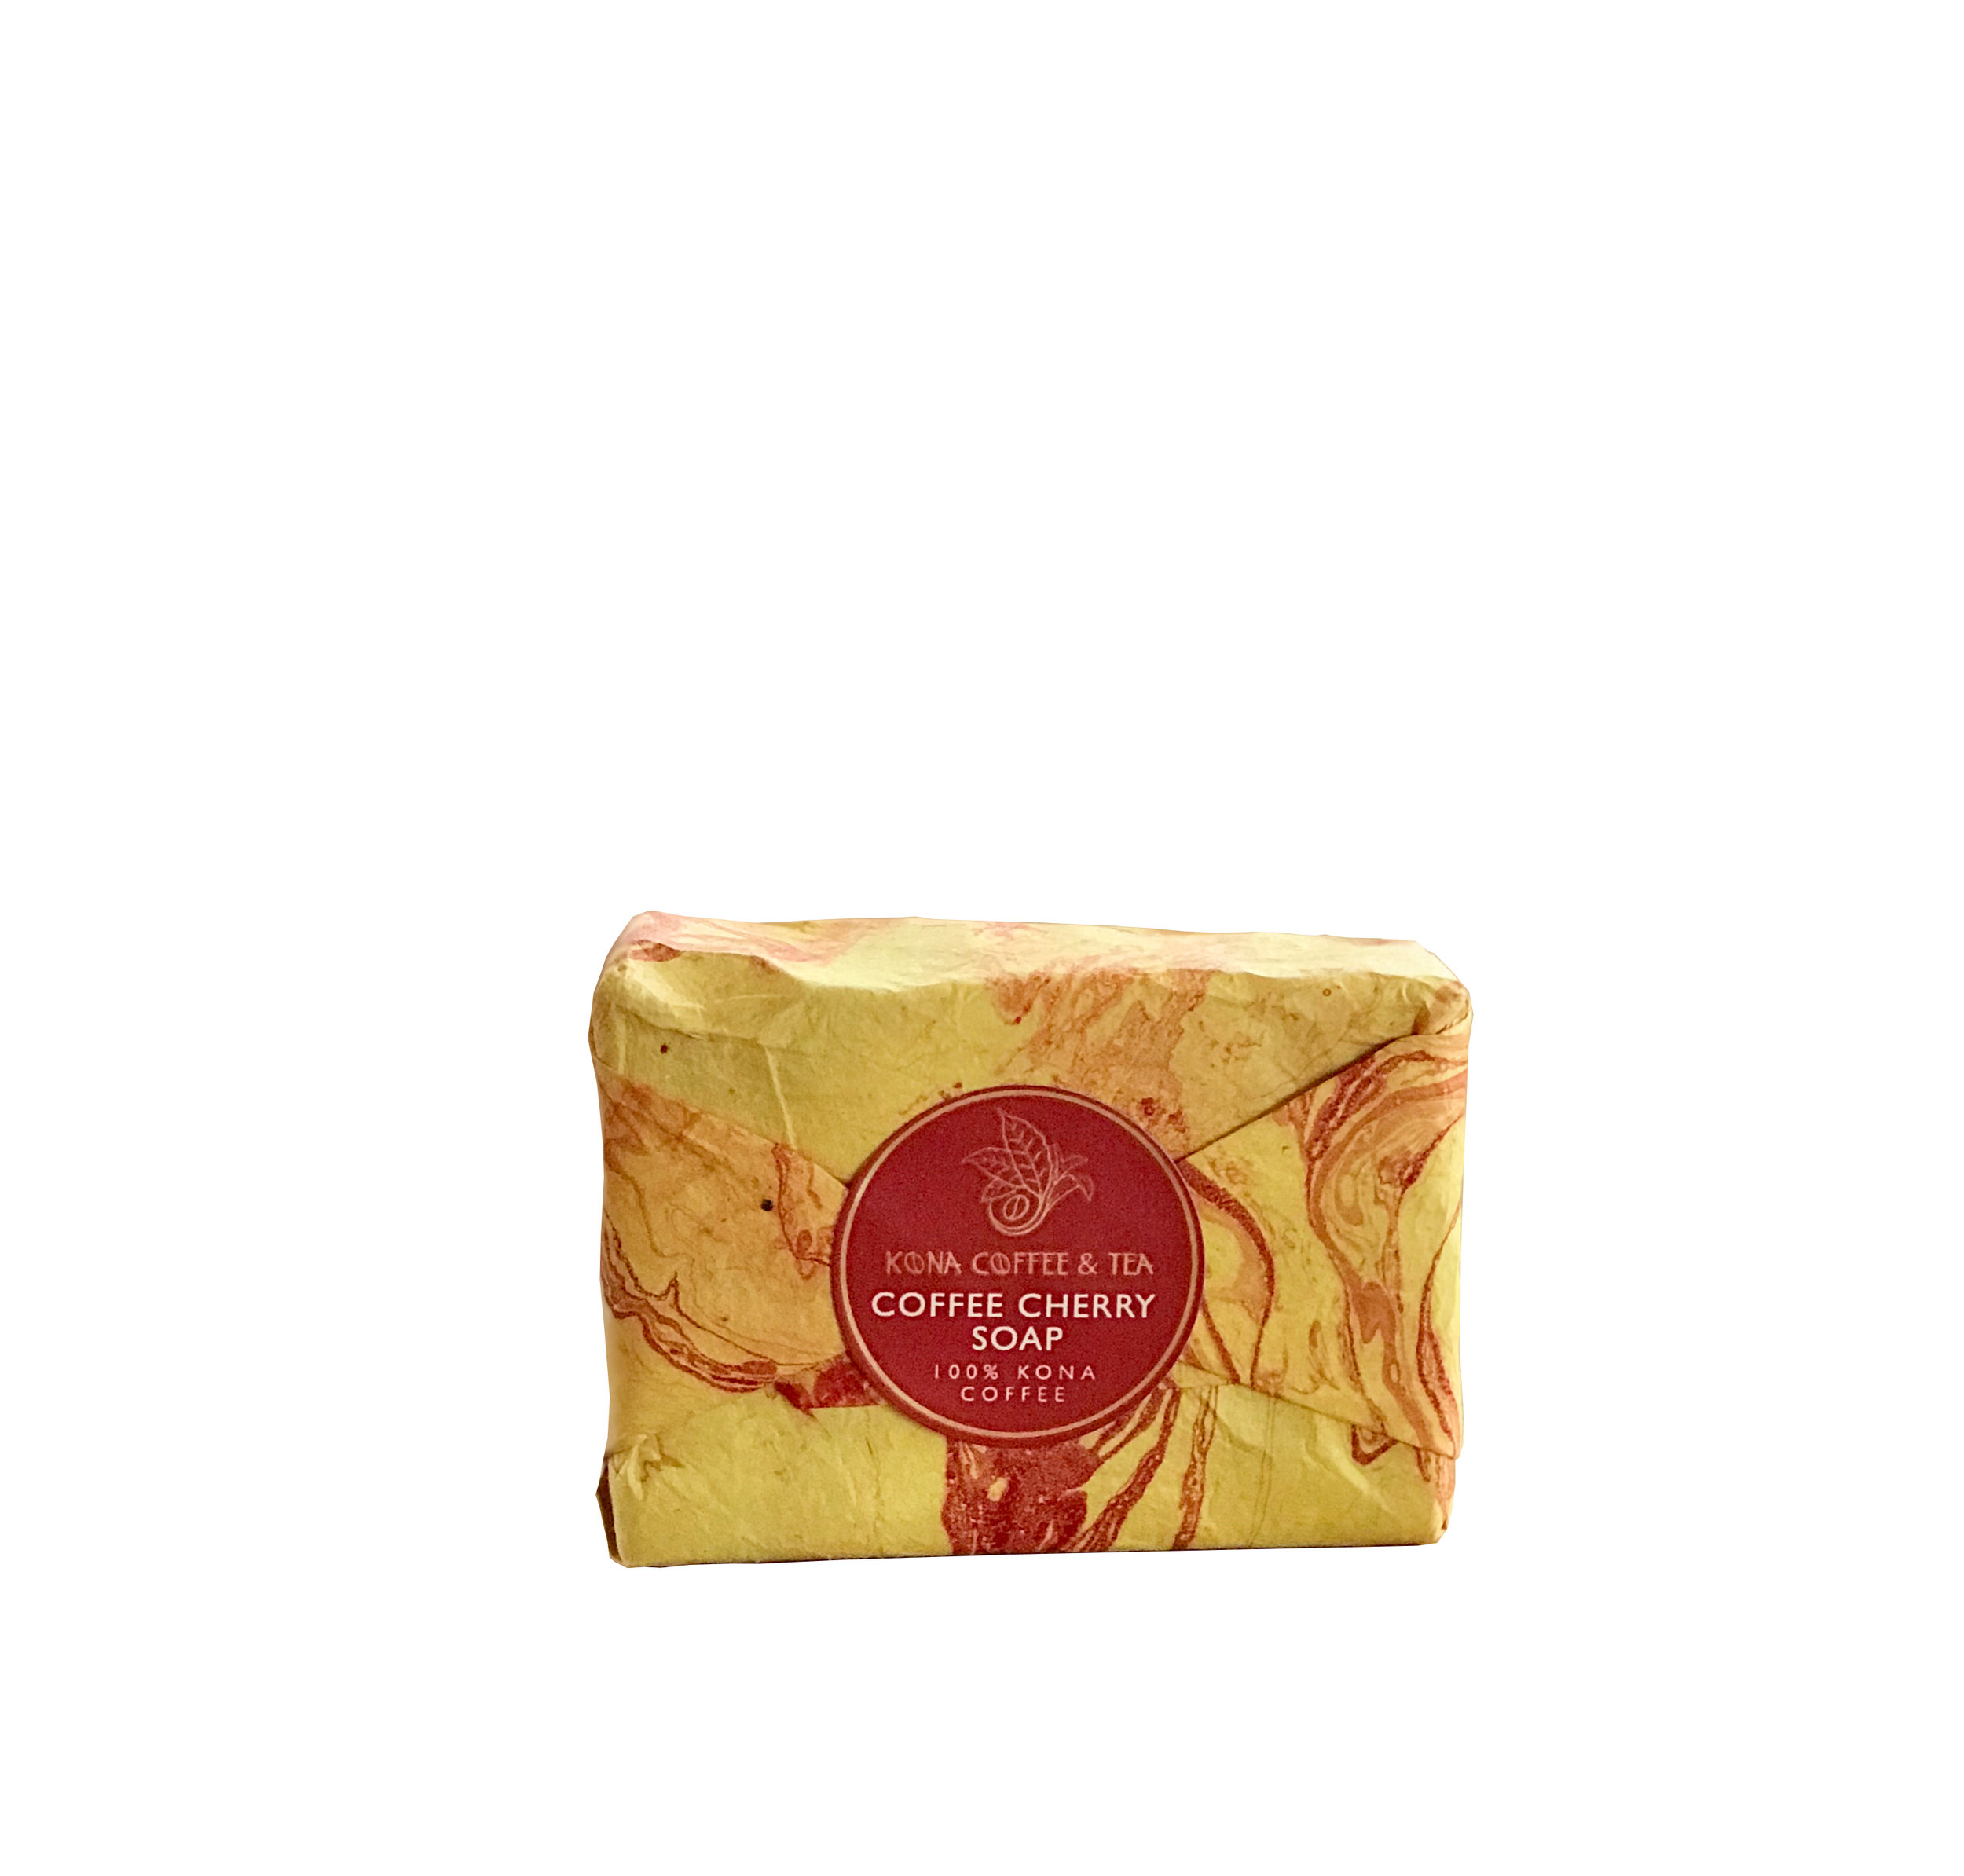 Coffee Cherry Soap